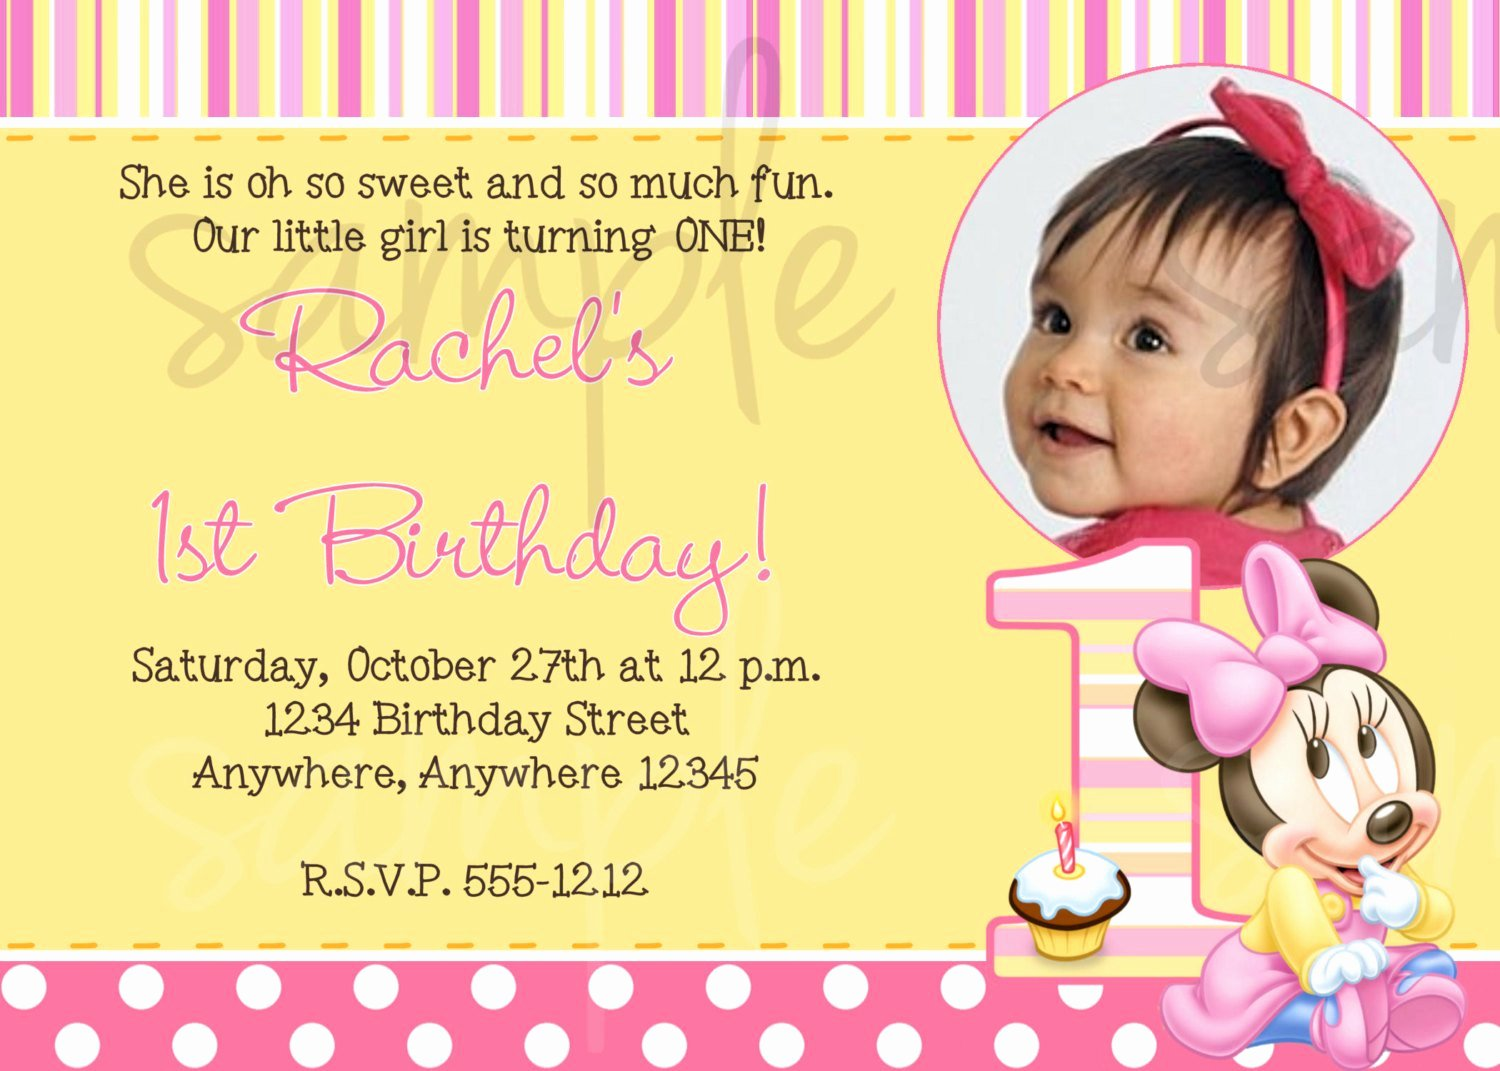 1st Birthday Invitation Template Inspirational Minnie Mouse 1st Birthday Invitation